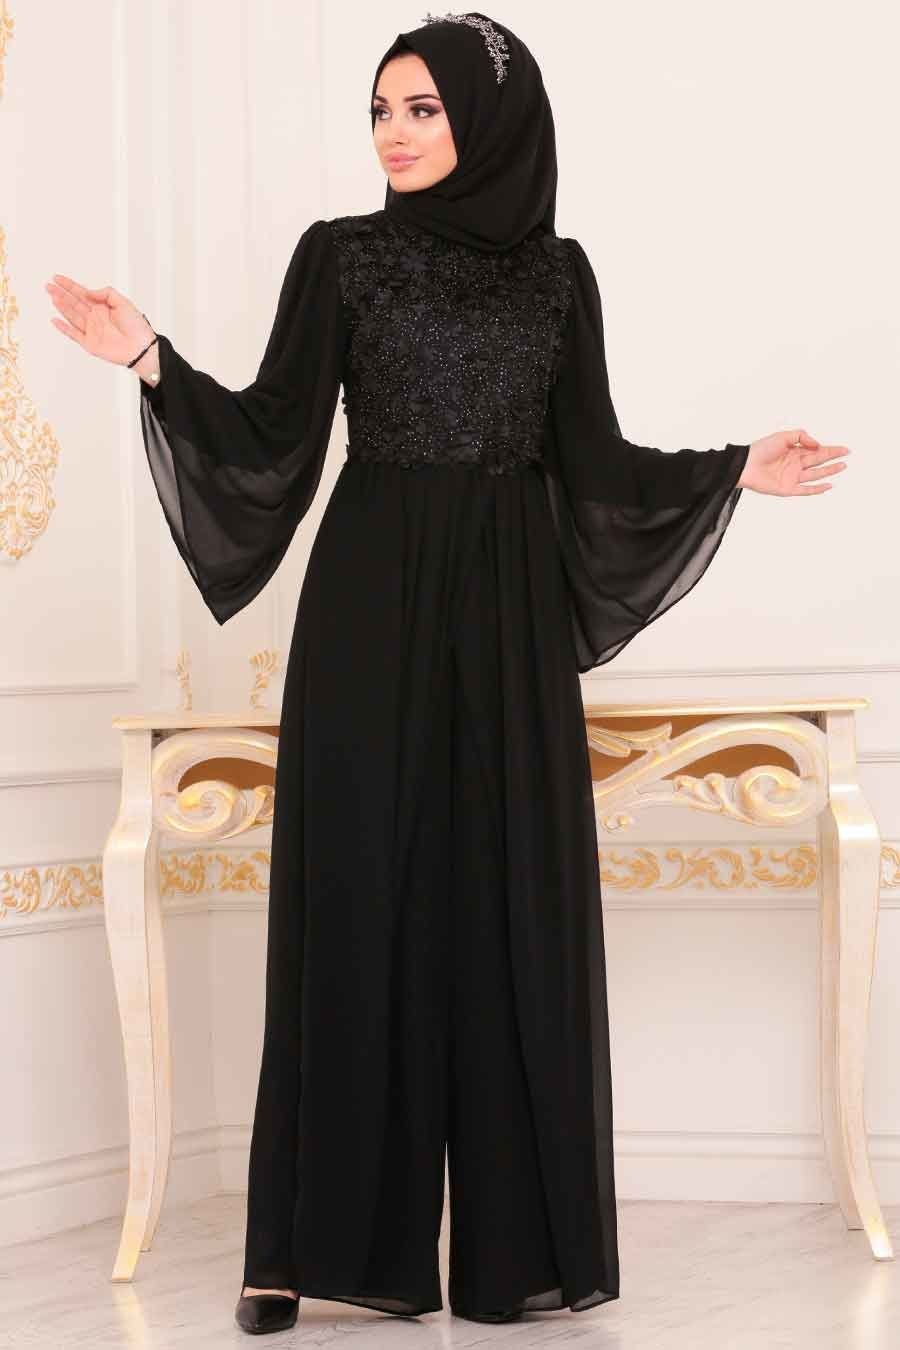 Nayla Collection Uc Boyutlu Cicekli Siyah Tesettur Abiye Tulum 3932s Tesetturisland Com Tesettur Abiye Modelleri 20 Dresses Daily Dress Modest Clothing Women